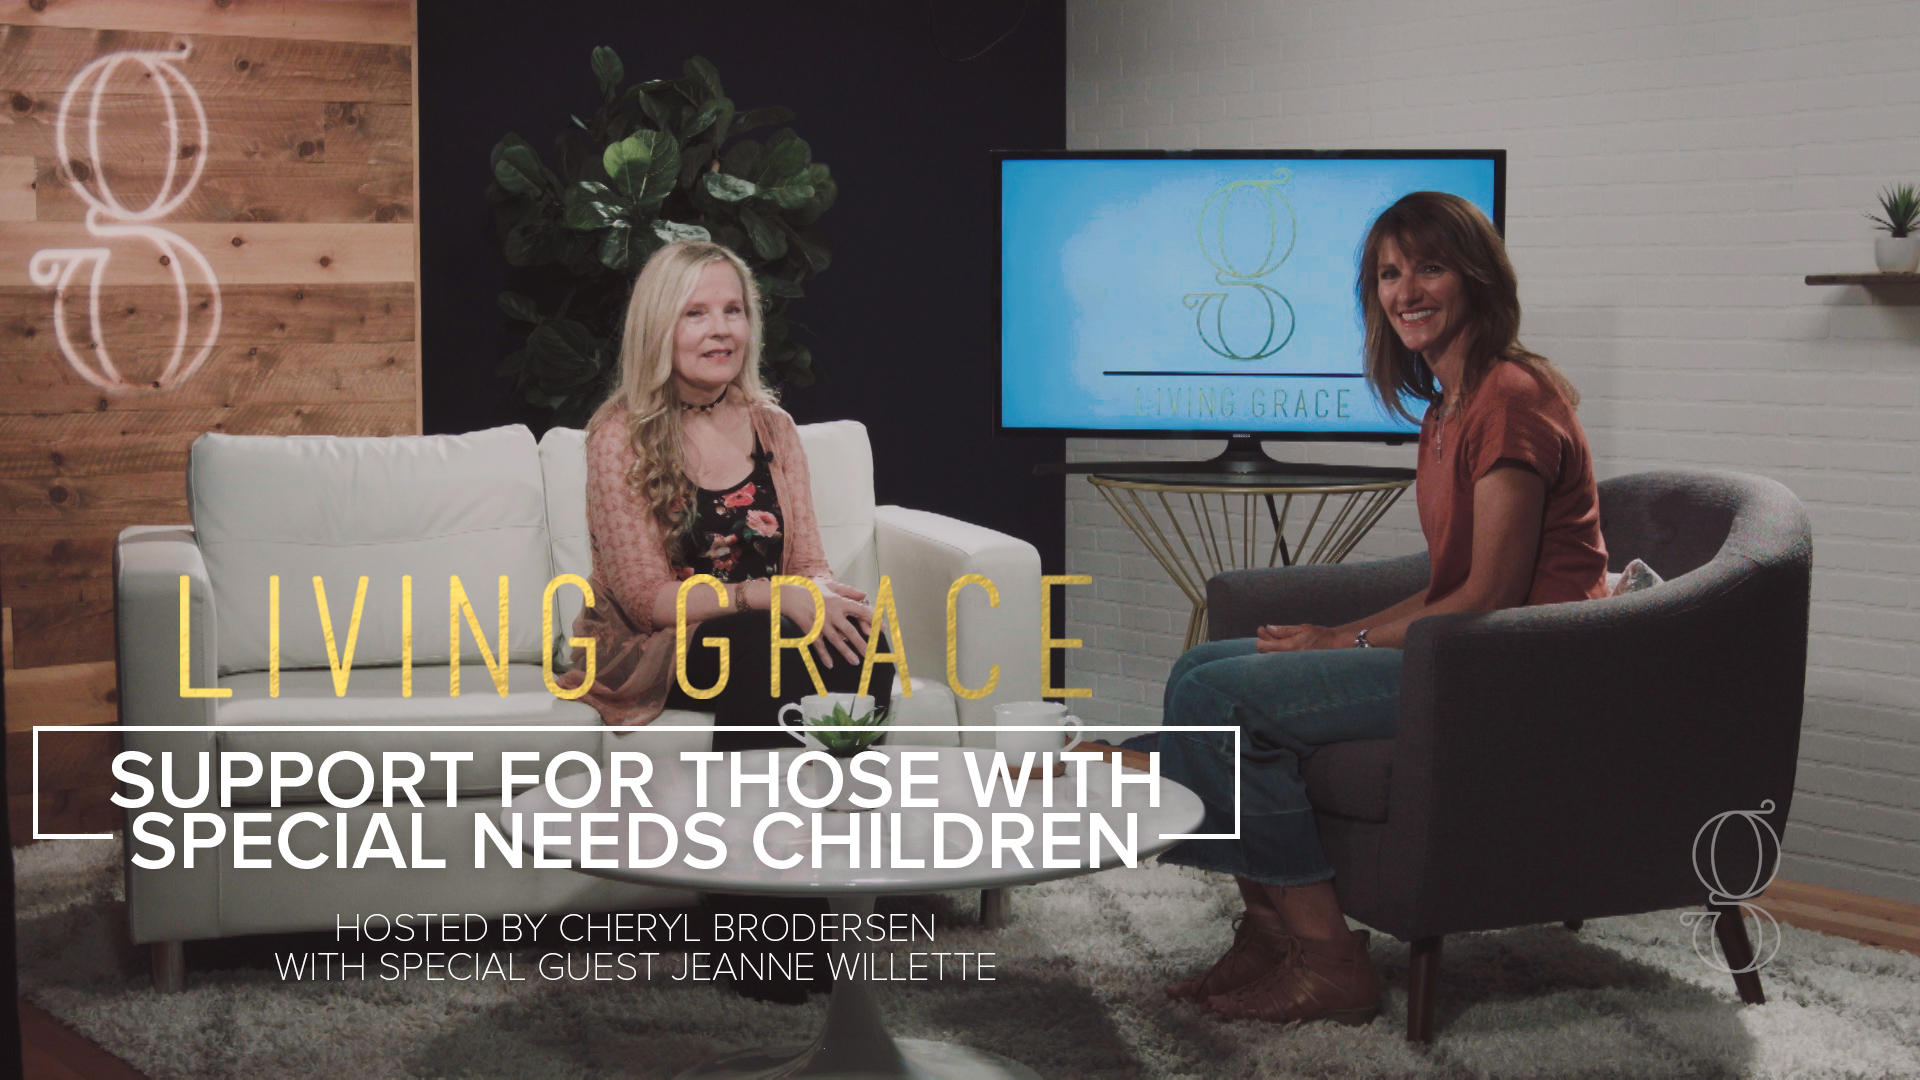 Living Grace S3 E5: Support for Those with Special Needs Children